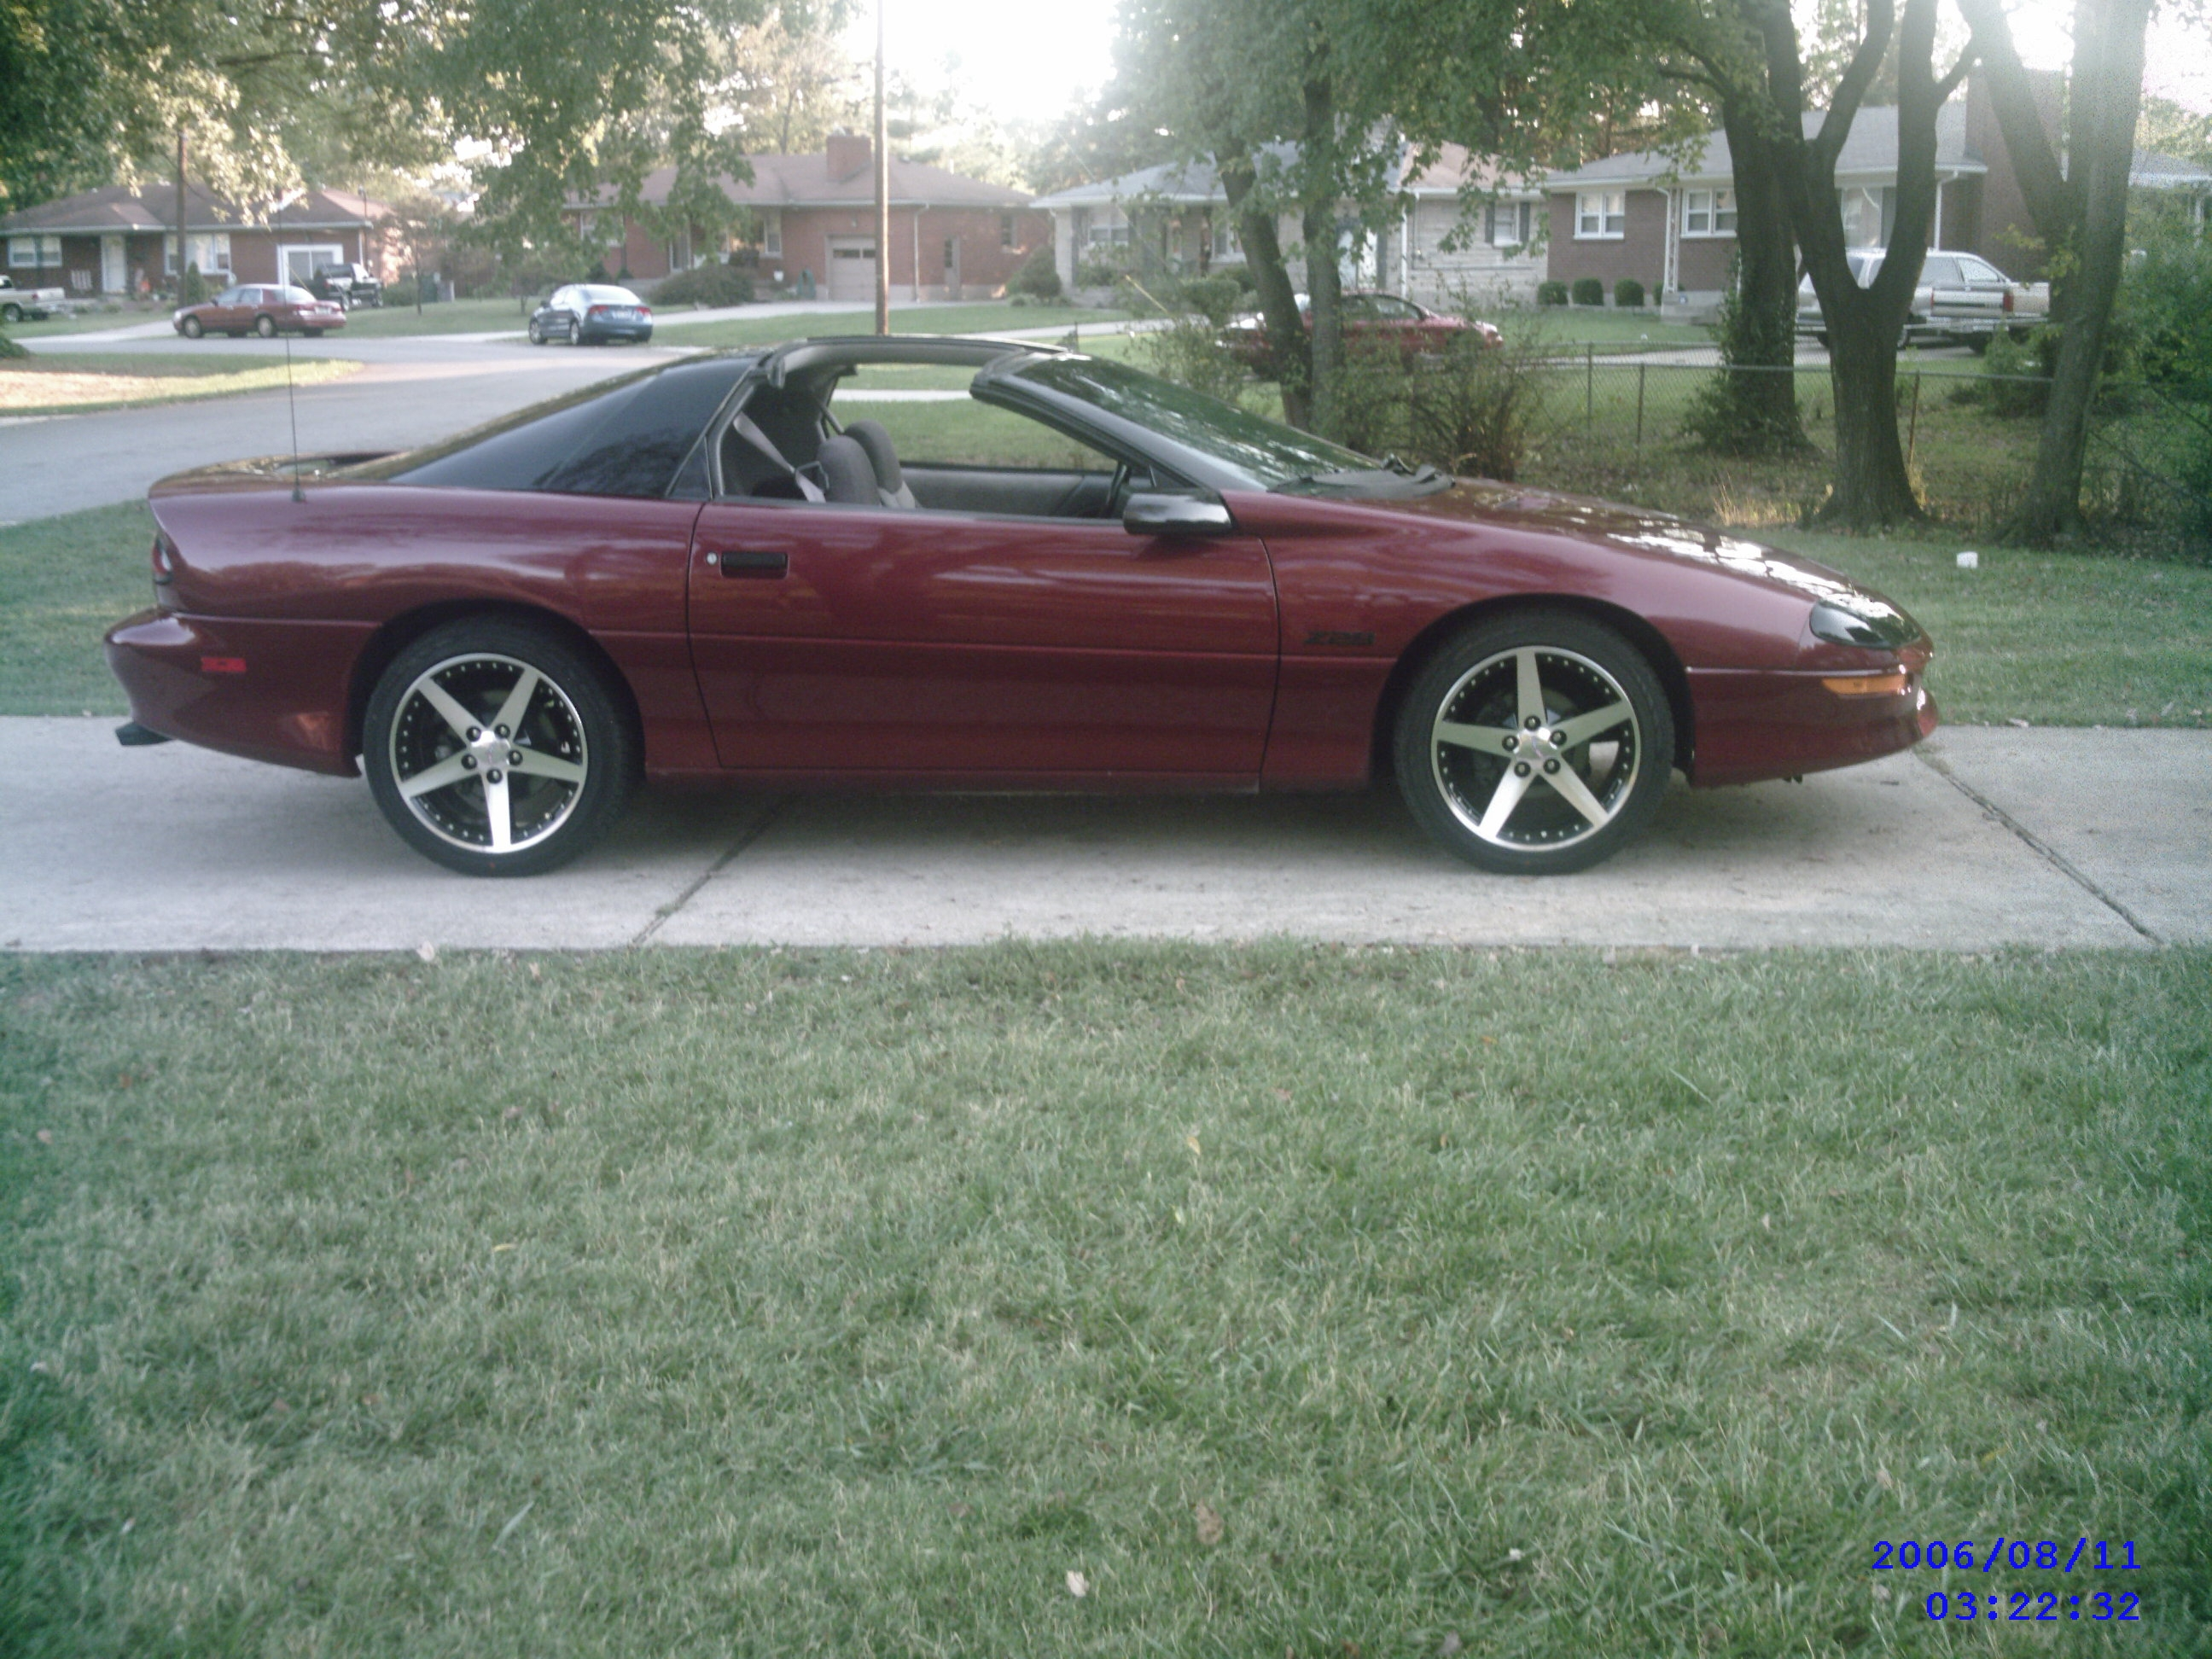 eezy@bellsouth.n 1994 Chevrolet Camaro 14625798